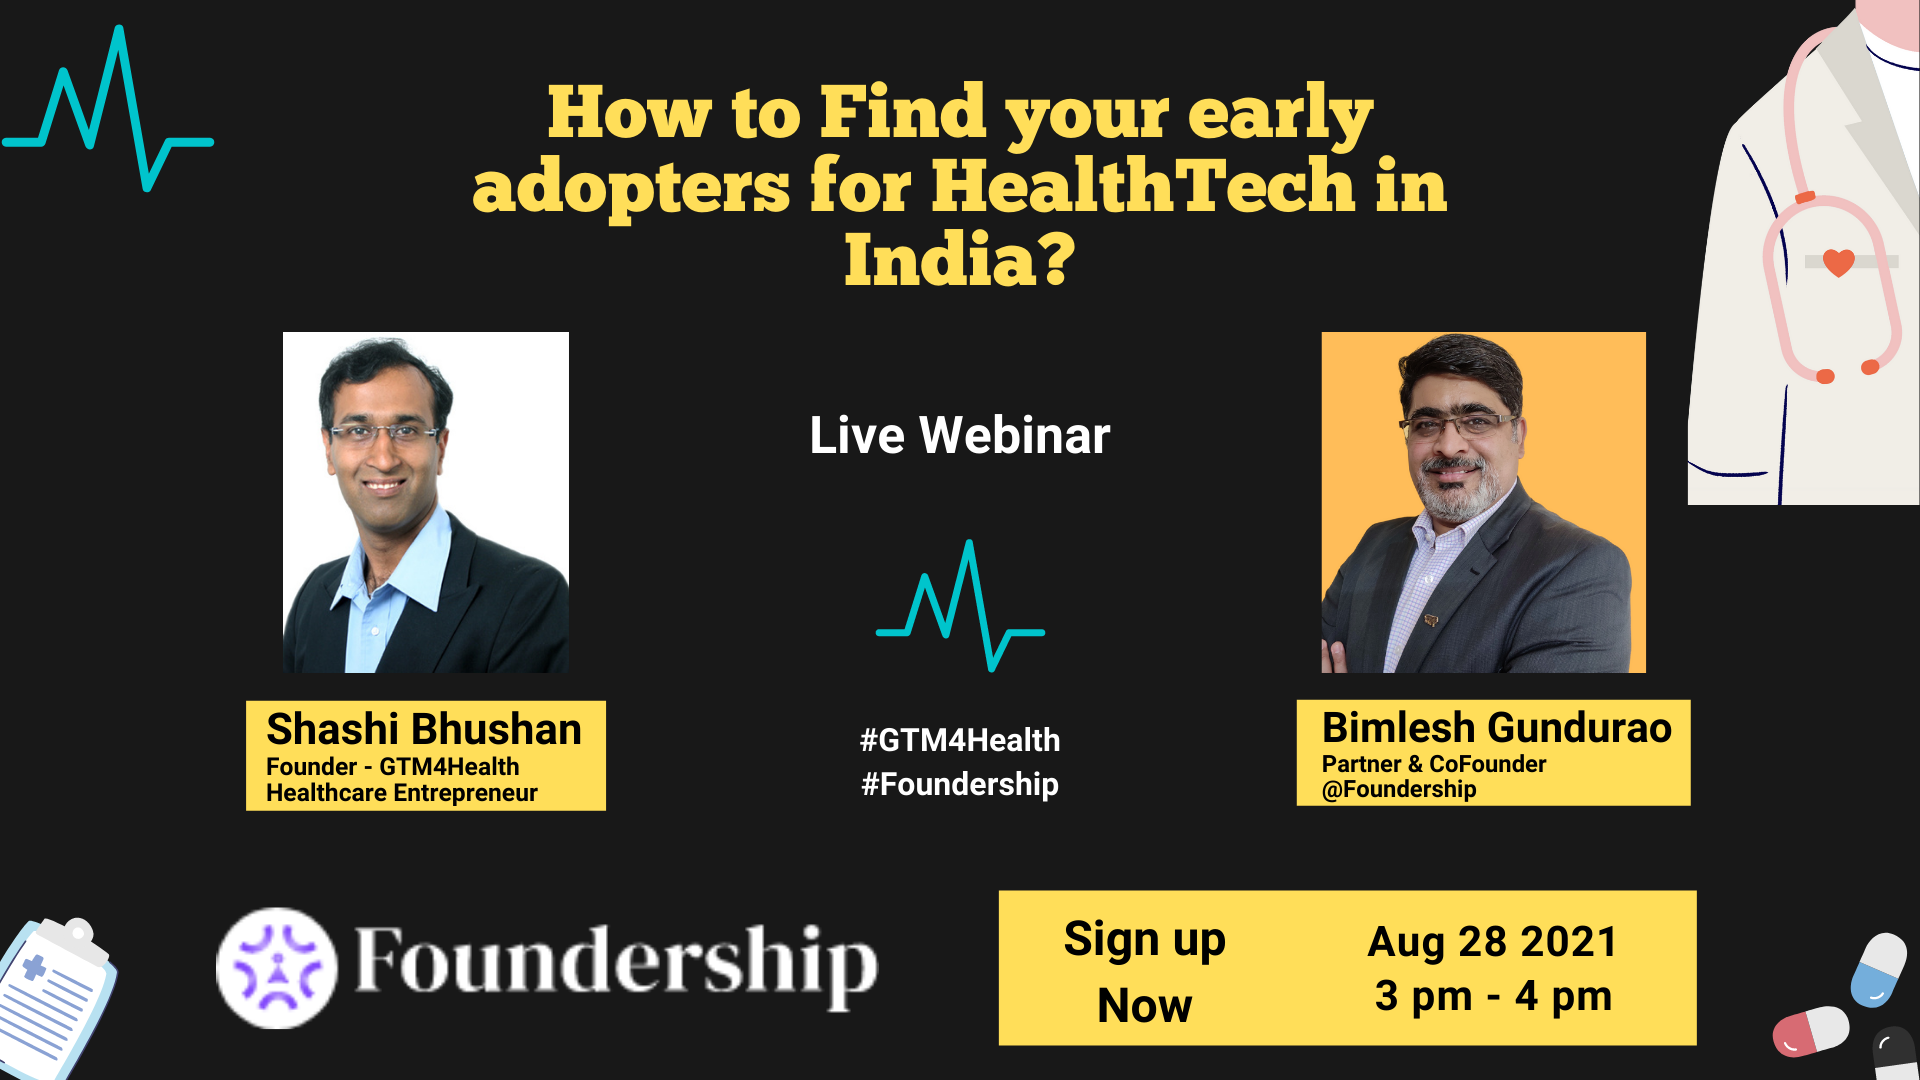 How to Find your Early Adopters for HealthTech in India?